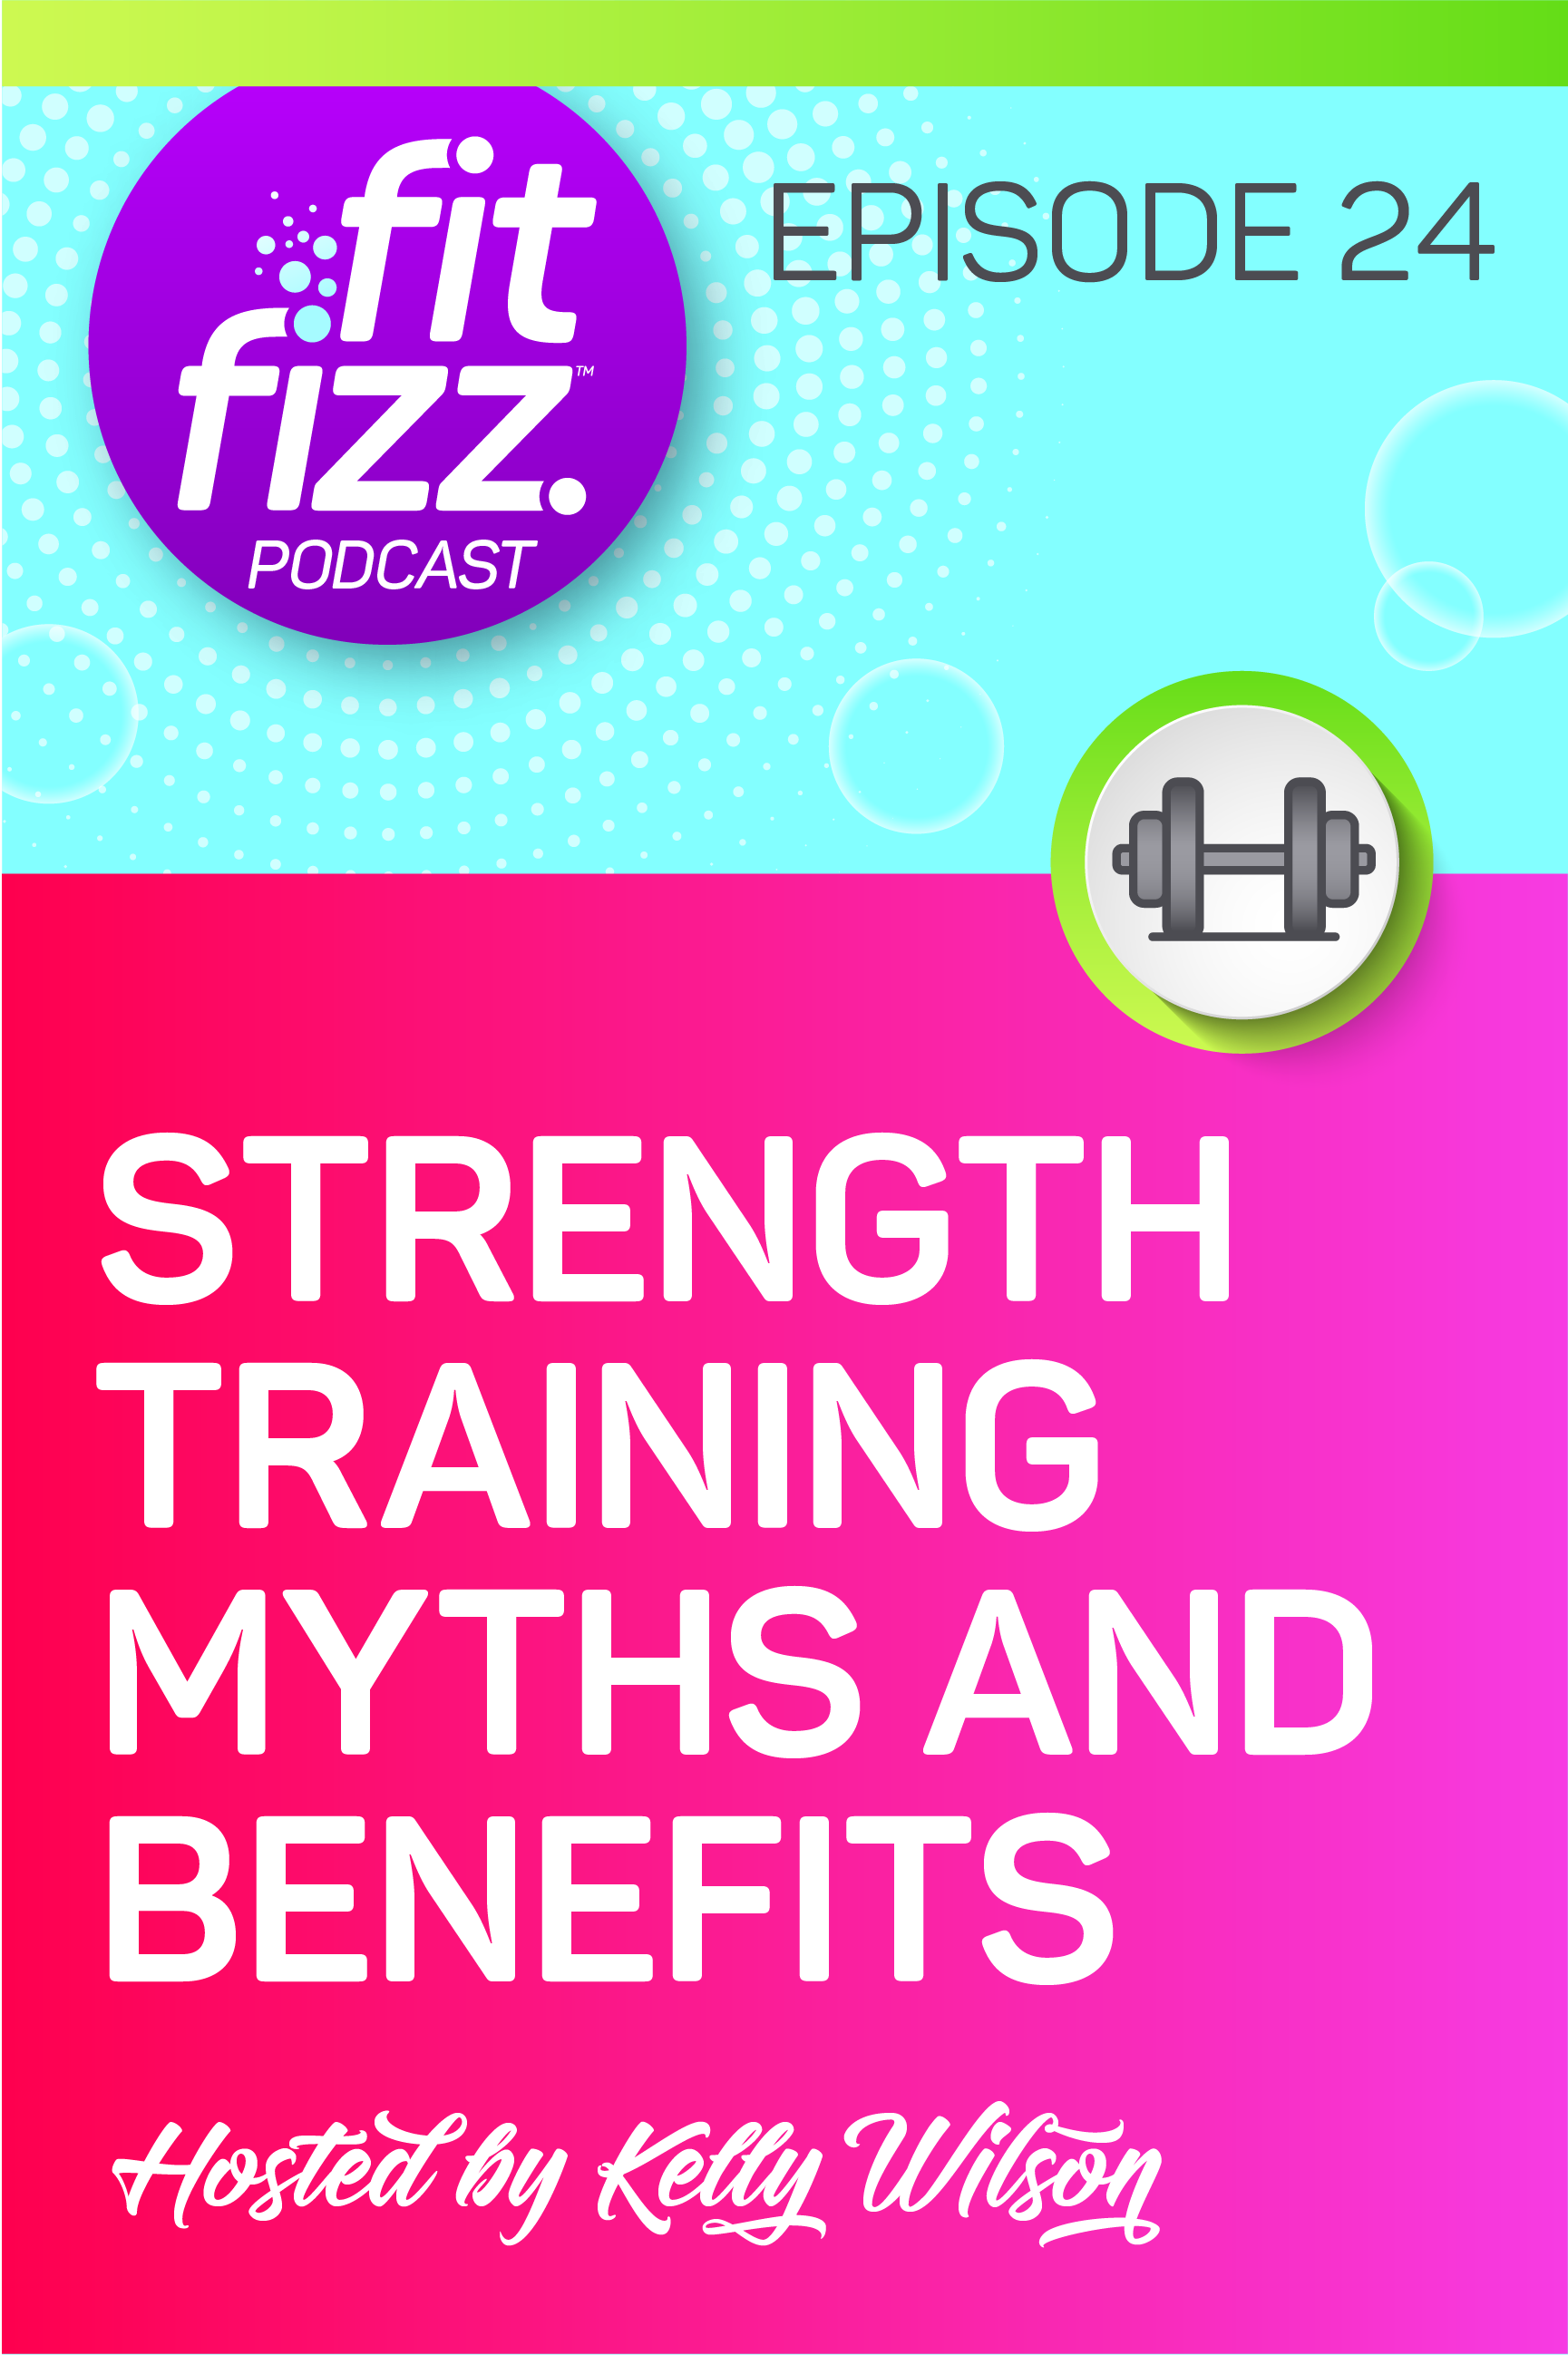 EP. 24: Strength Training Myths & Benefits